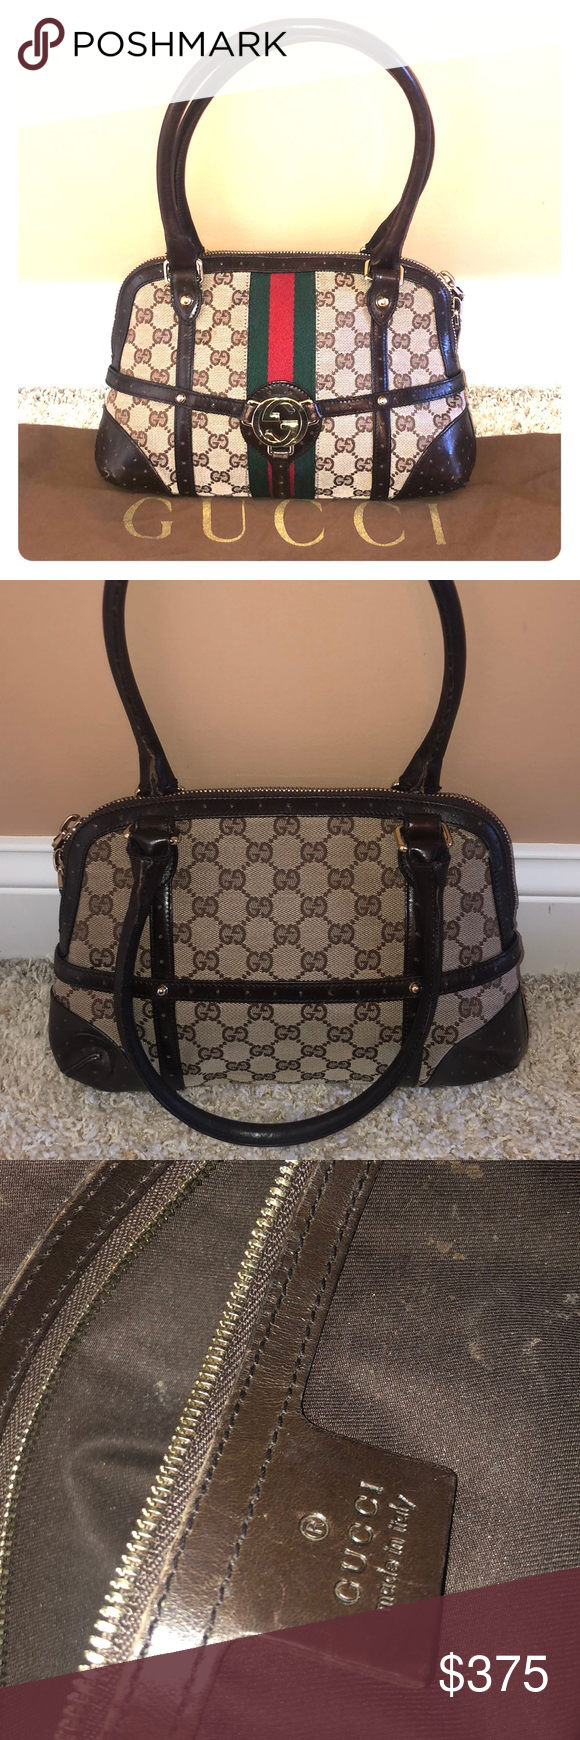 8dfb47ac4c73 Spotted while shopping on Poshmark: Vintage Gucci Bag! #poshmark #fashion # shopping #style #Gucci #Handbags